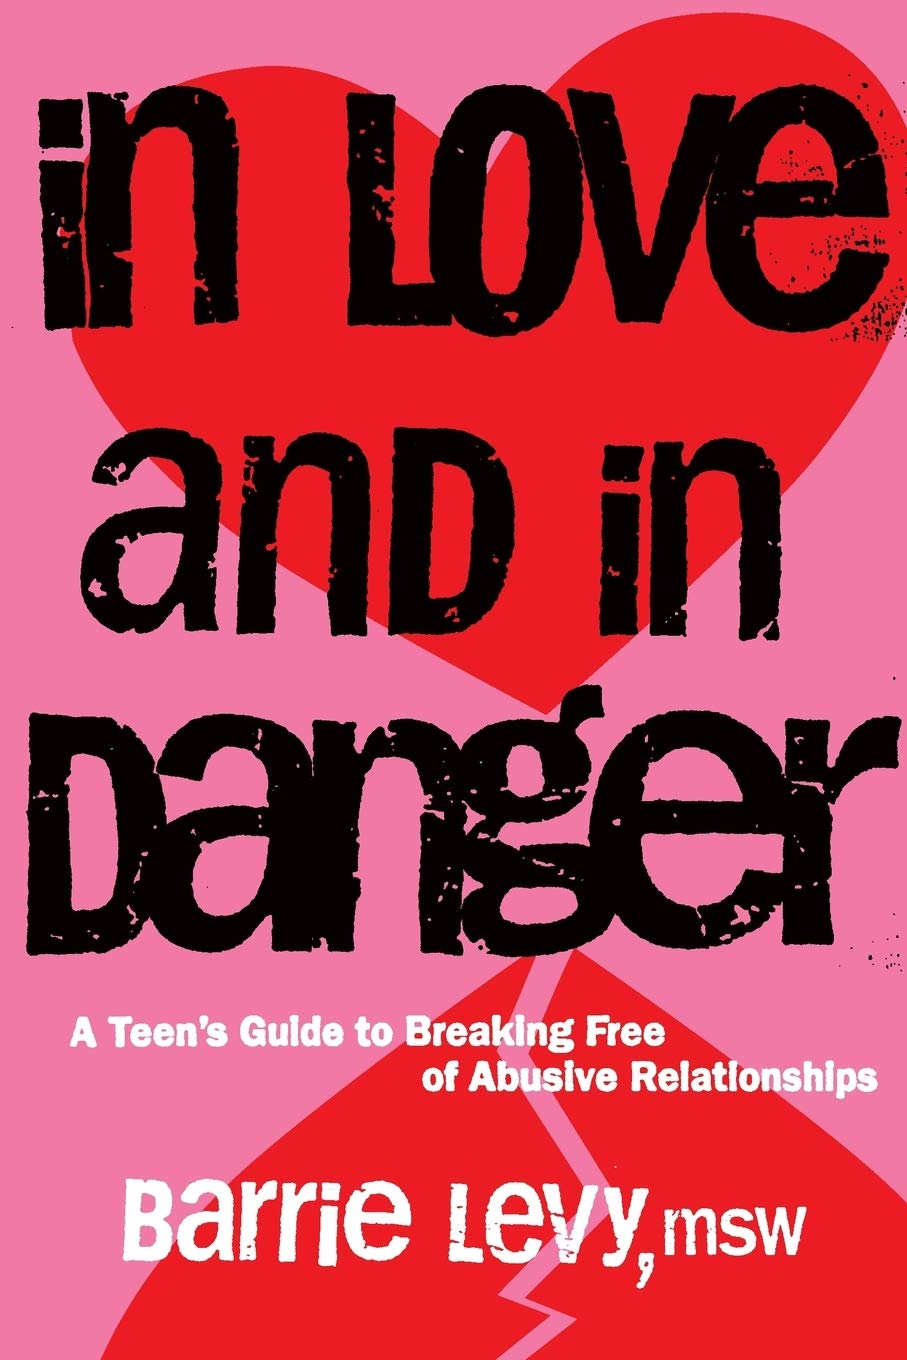 Published in 1993 , In Love and In danger guides teenagers through abusive relationships